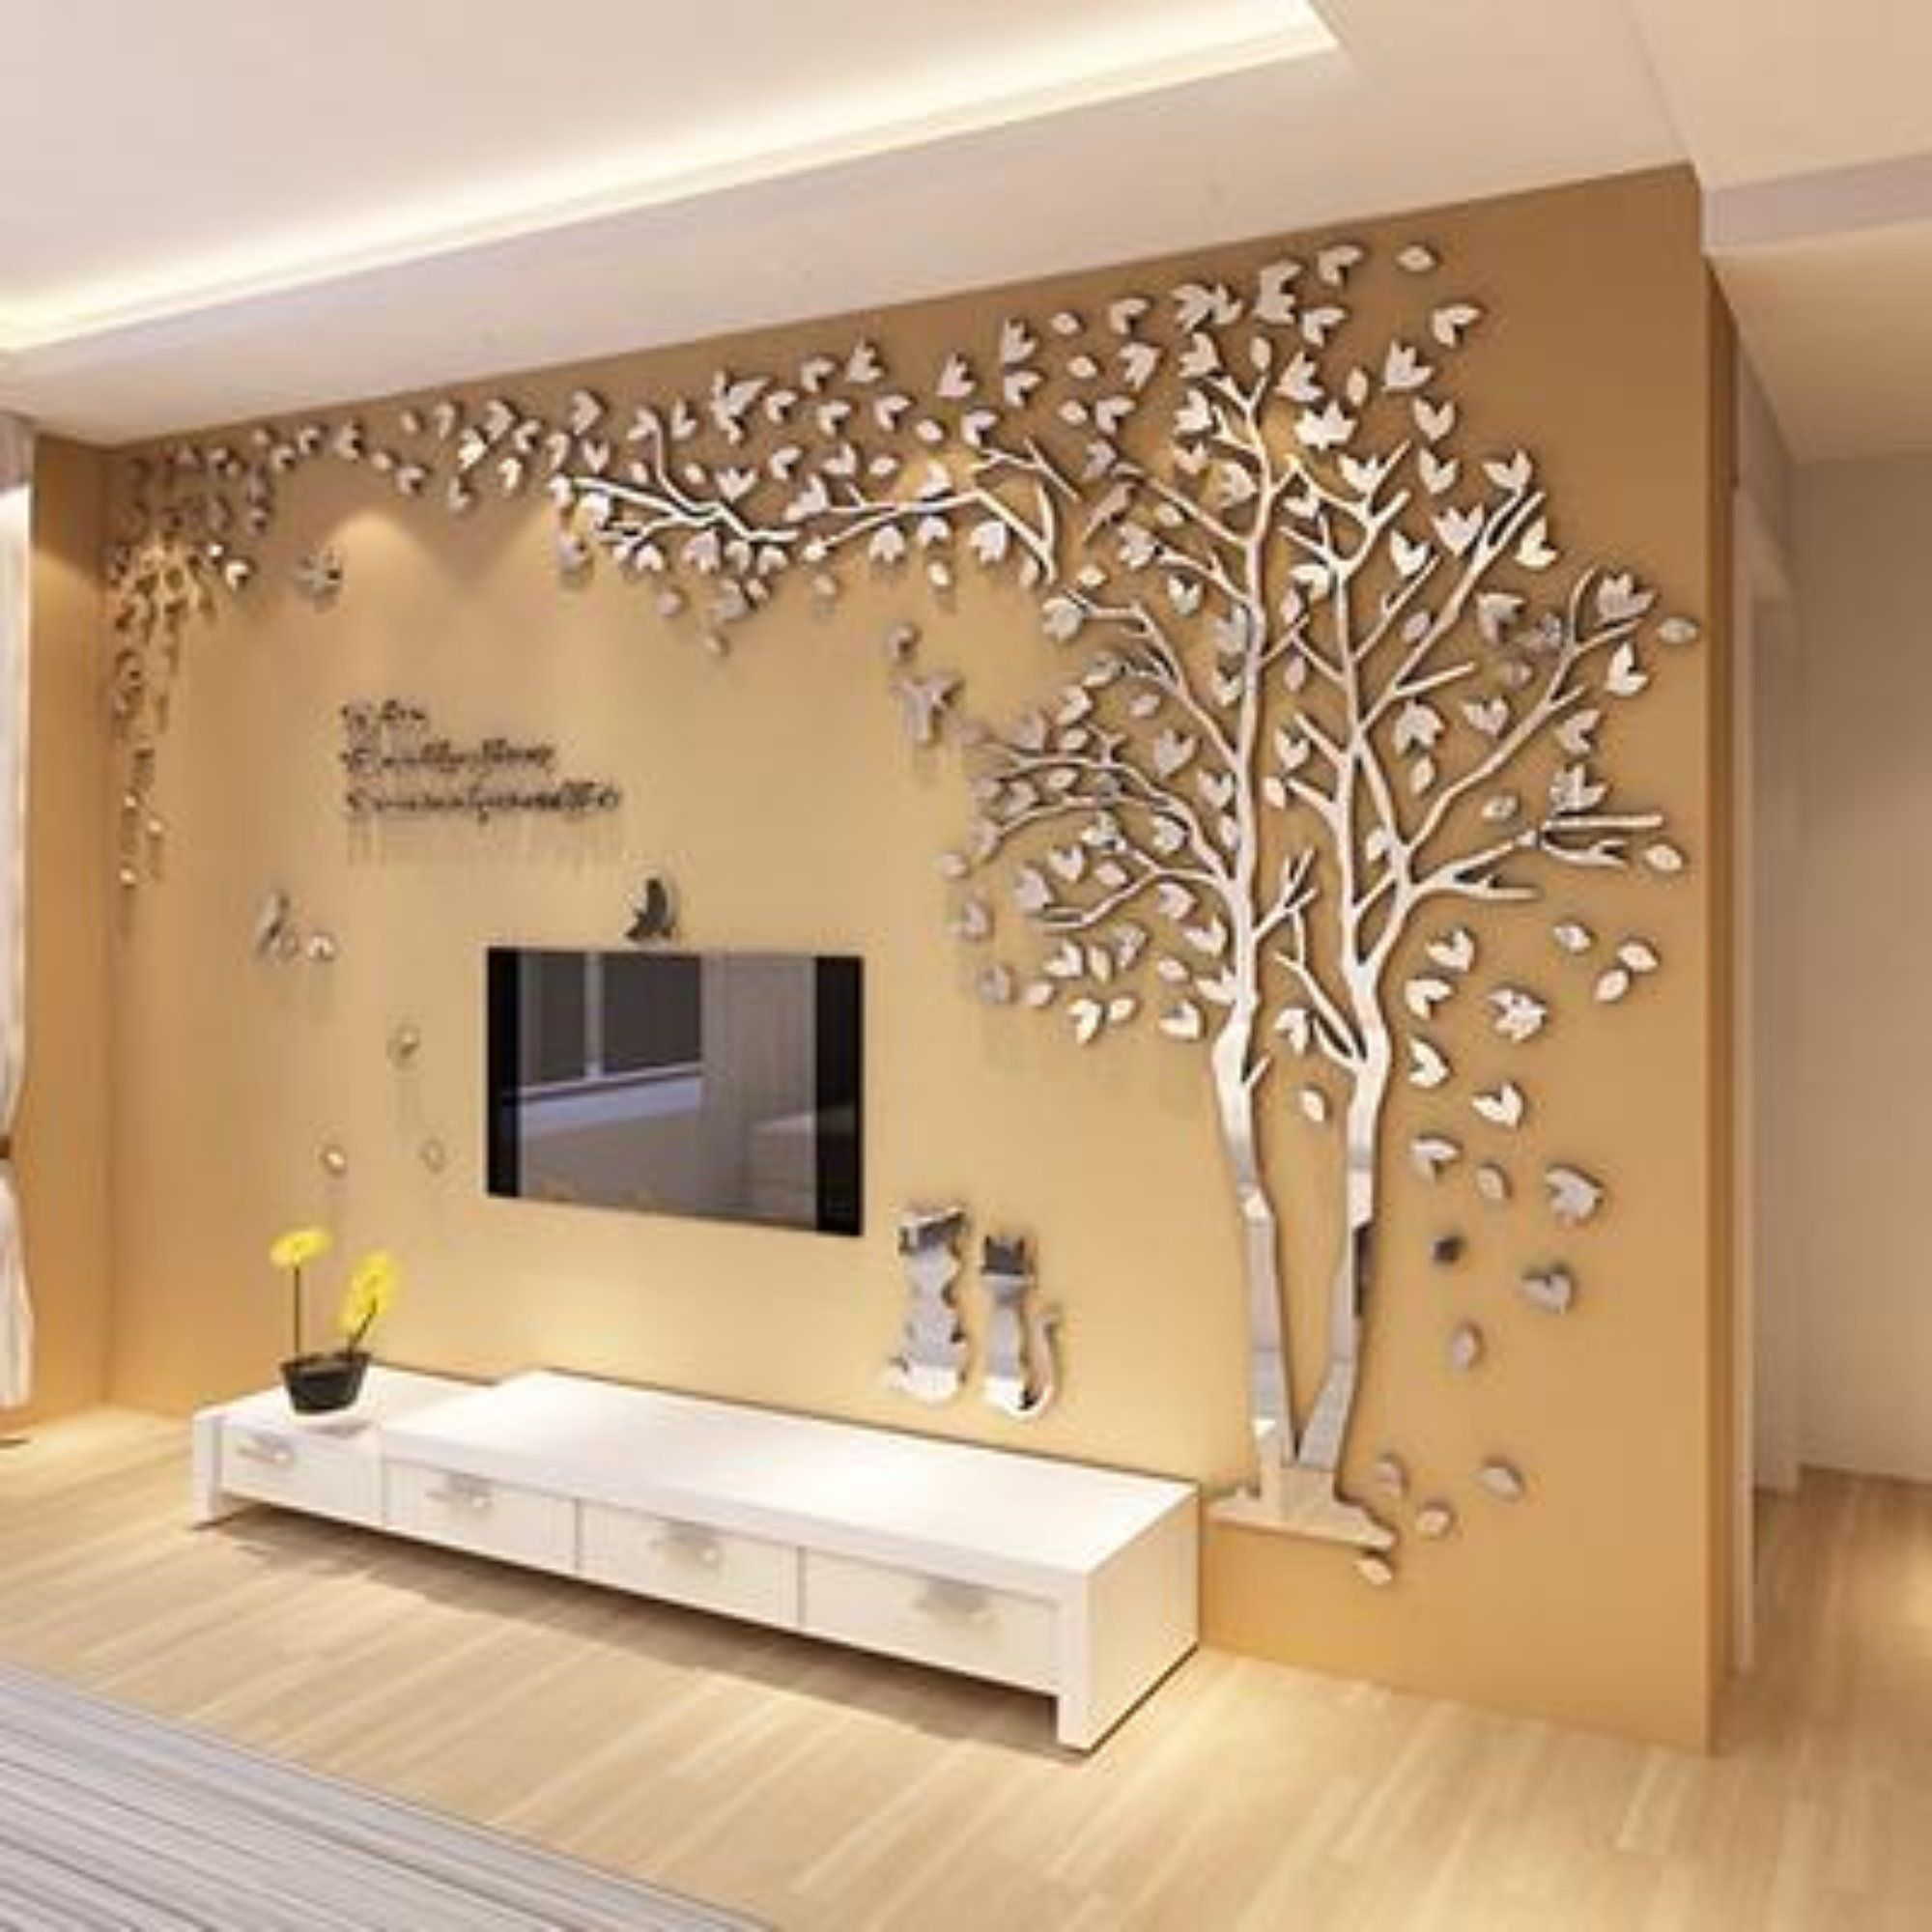 Couple Tree 3d Acrylic Stereo Creative Wall Stickers Living Room Wall Designs Creative Wall Decor Wall Decor Living Room